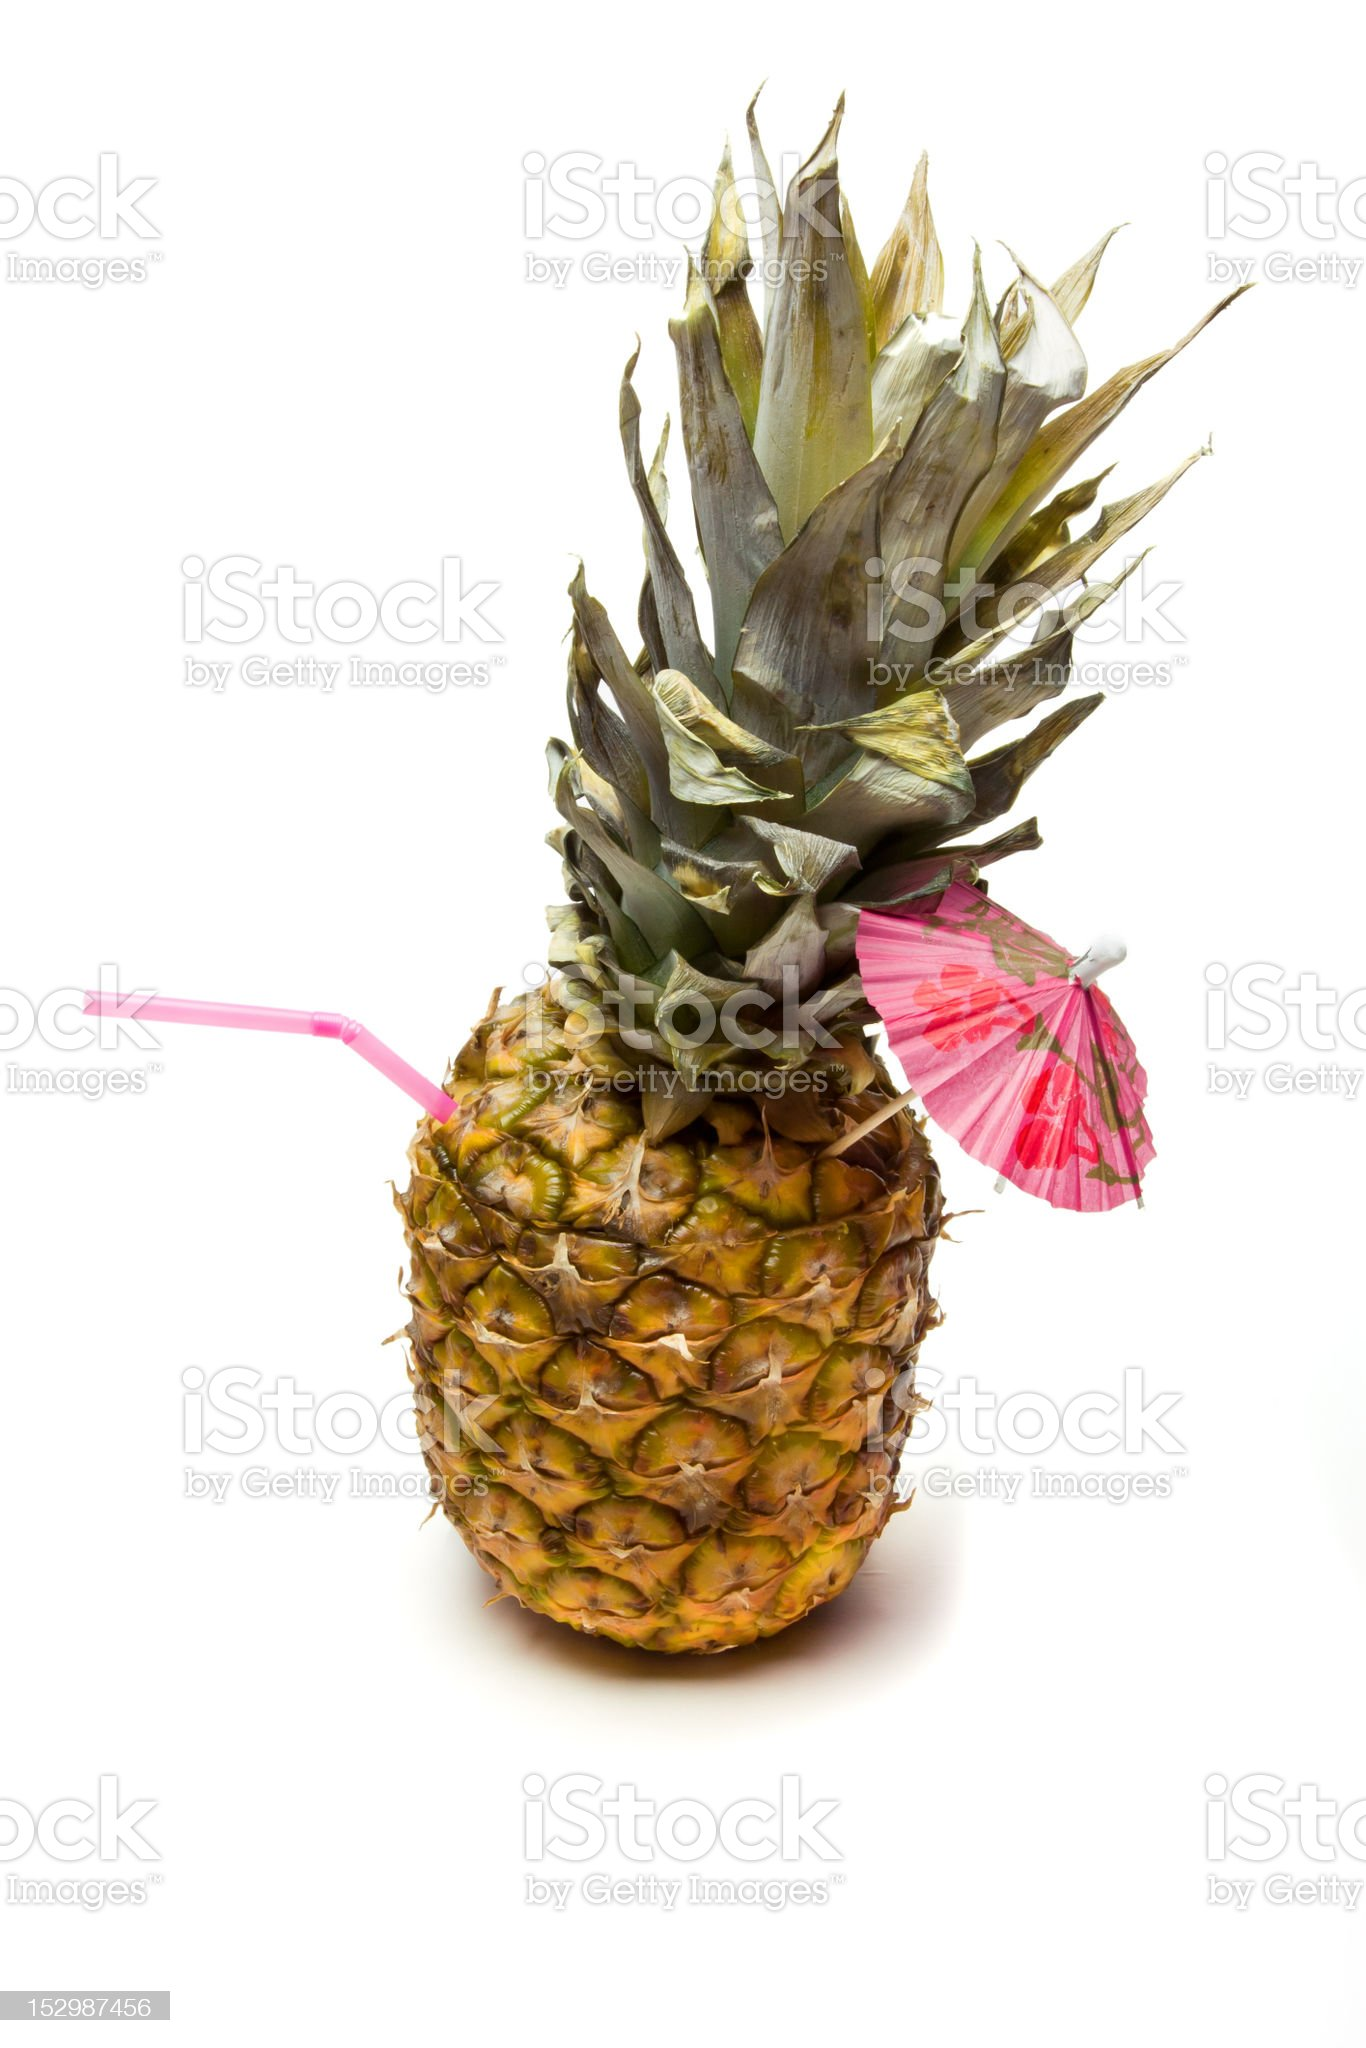 Pineapple Cocktail royalty-free stock photo